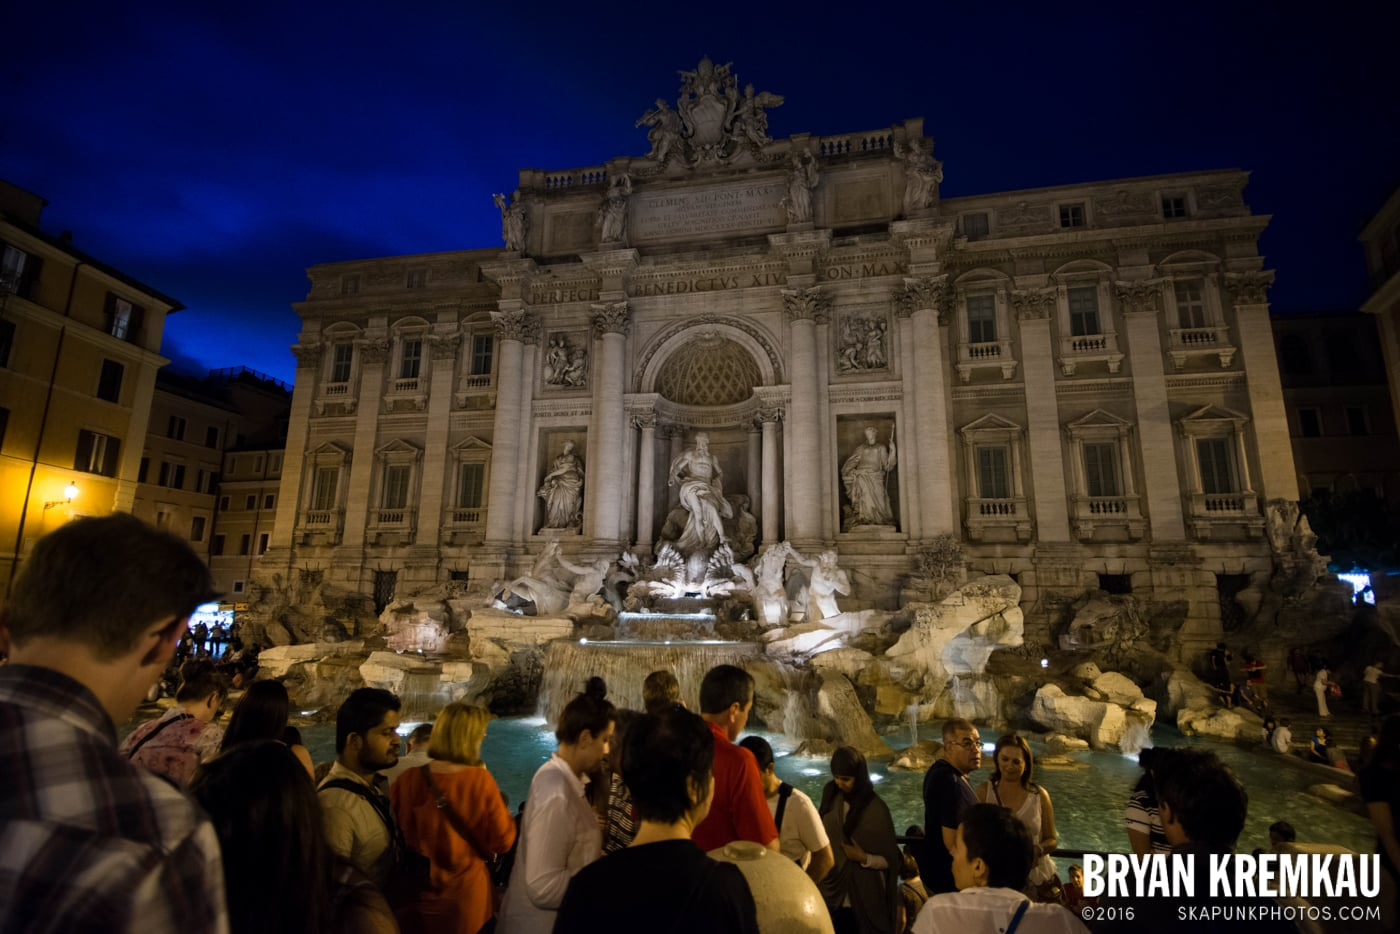 Italy Vacation - Day 1: Rome - 9.9.13 (24)